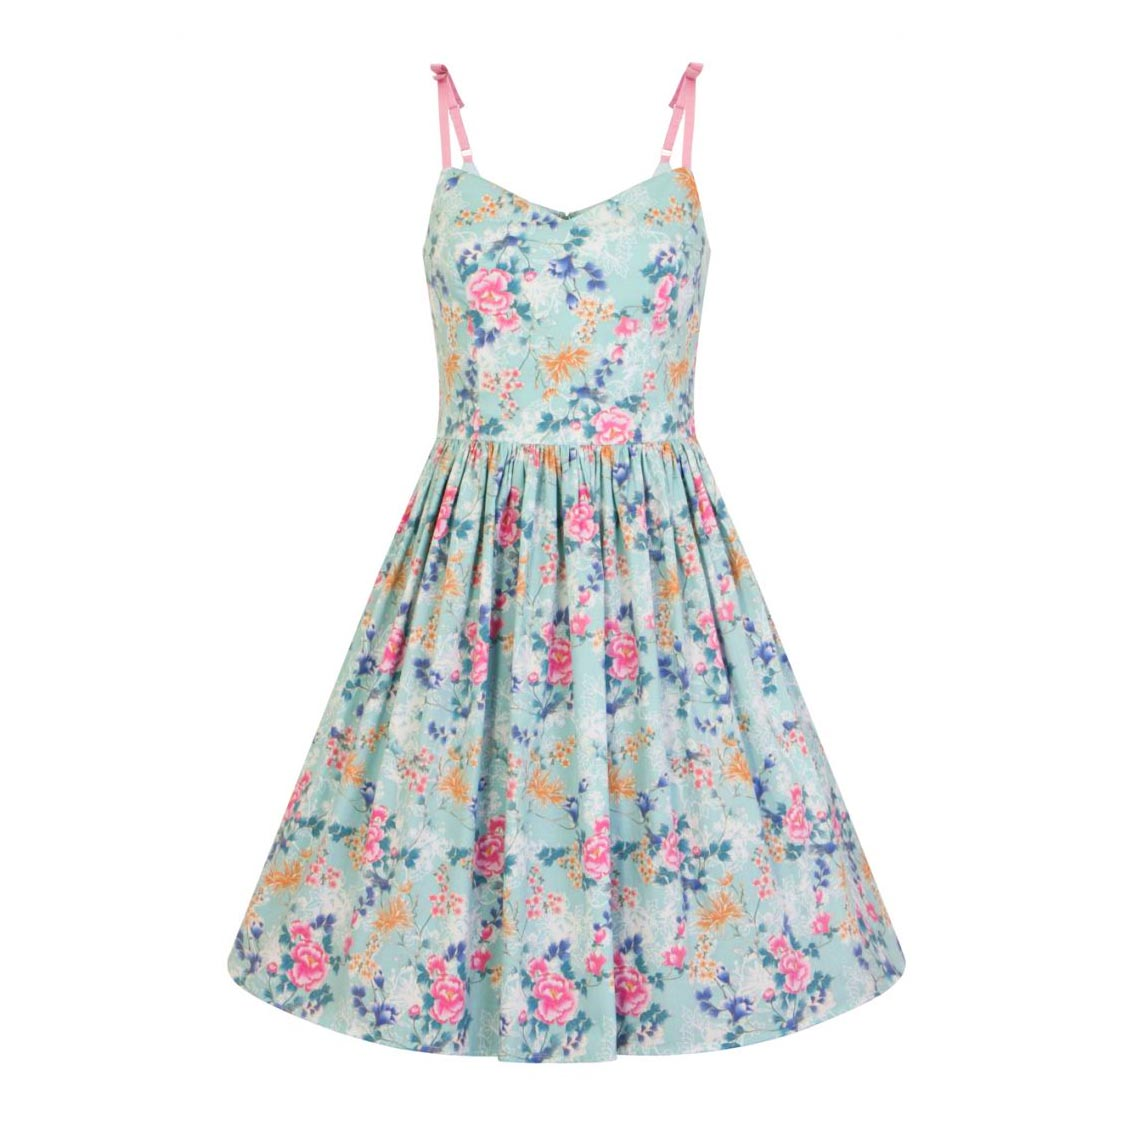 Hell-Bunny-50s-Mid-Length-Dress-Vintage-Blue-Pink-SAKURA-Flowers-Roses-All-Sizes thumbnail 38